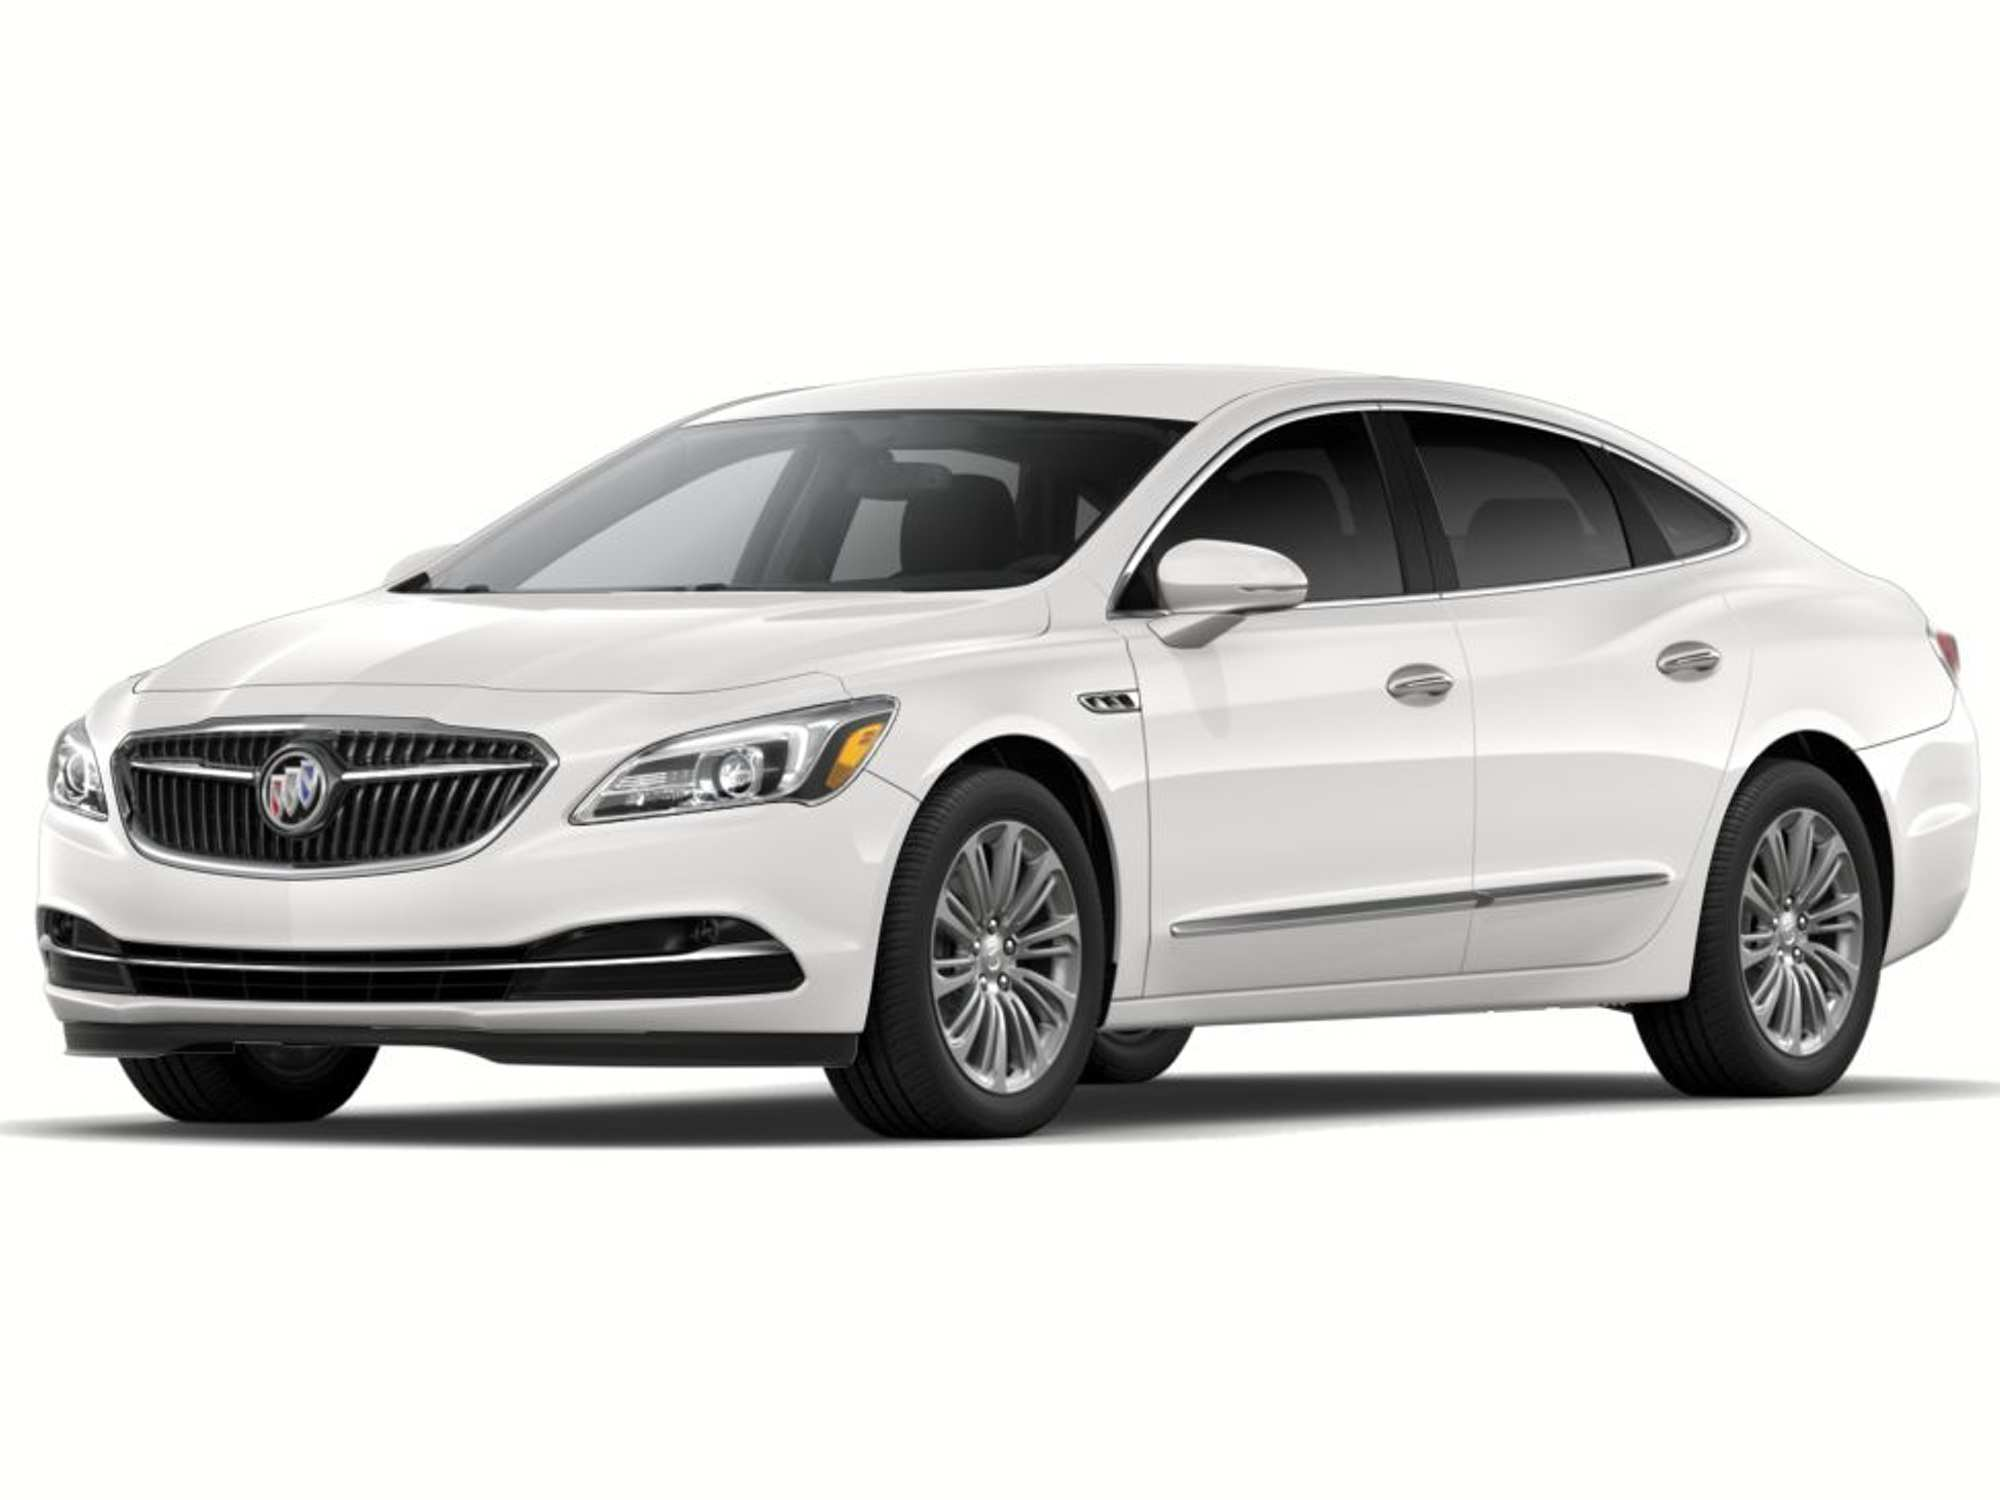 78 The 2019 Buick LaCrosses Ratings